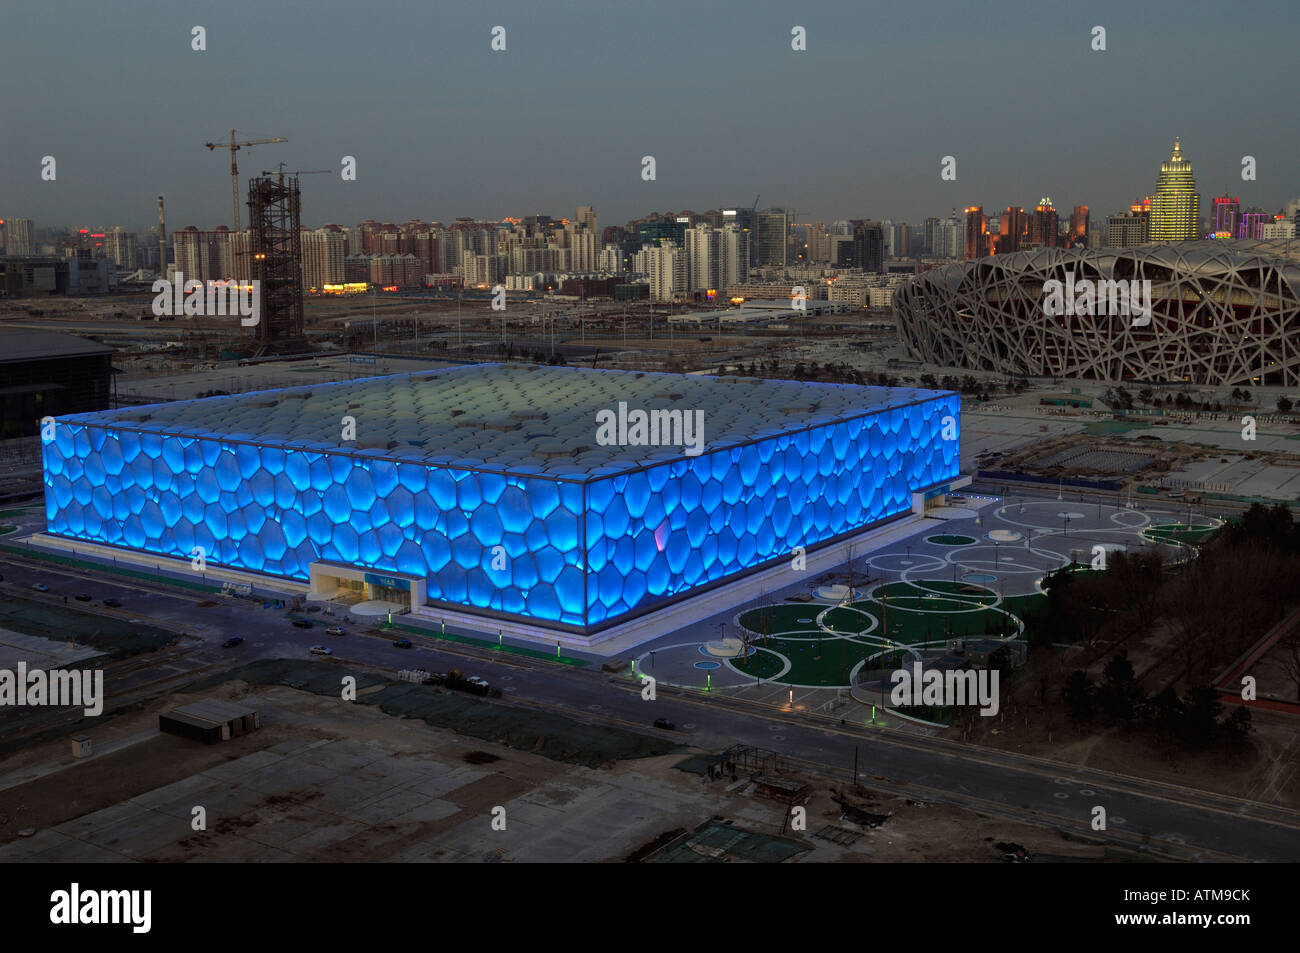 National Swimming Centre and National Stadium for the Beijing 2008 Olympic Games.  29-Feb-2008 - Stock Image